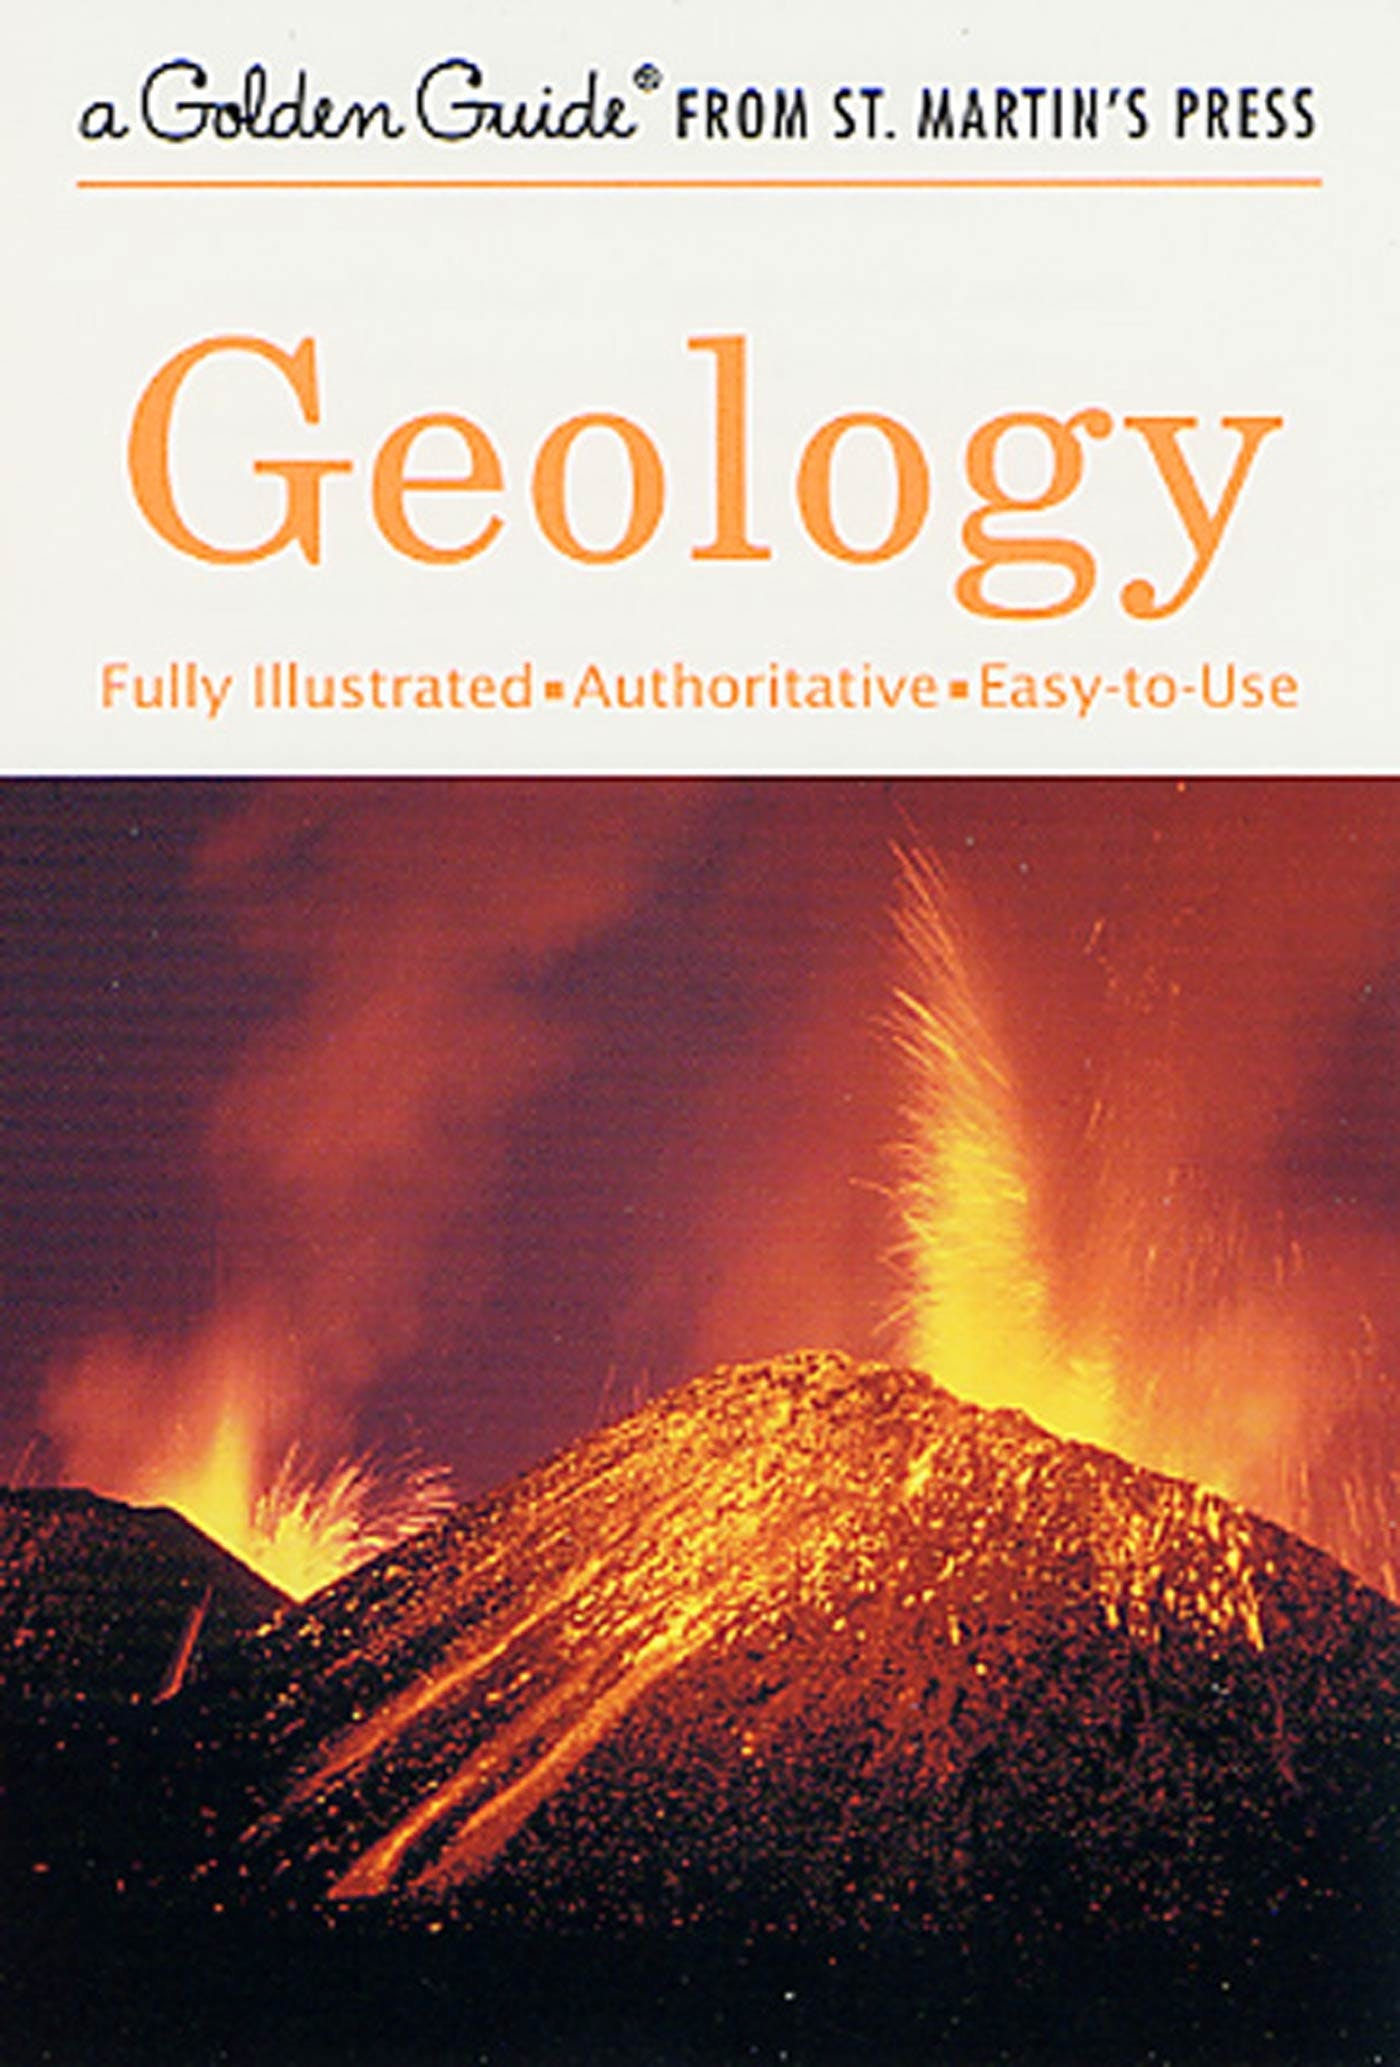 Image of Geology